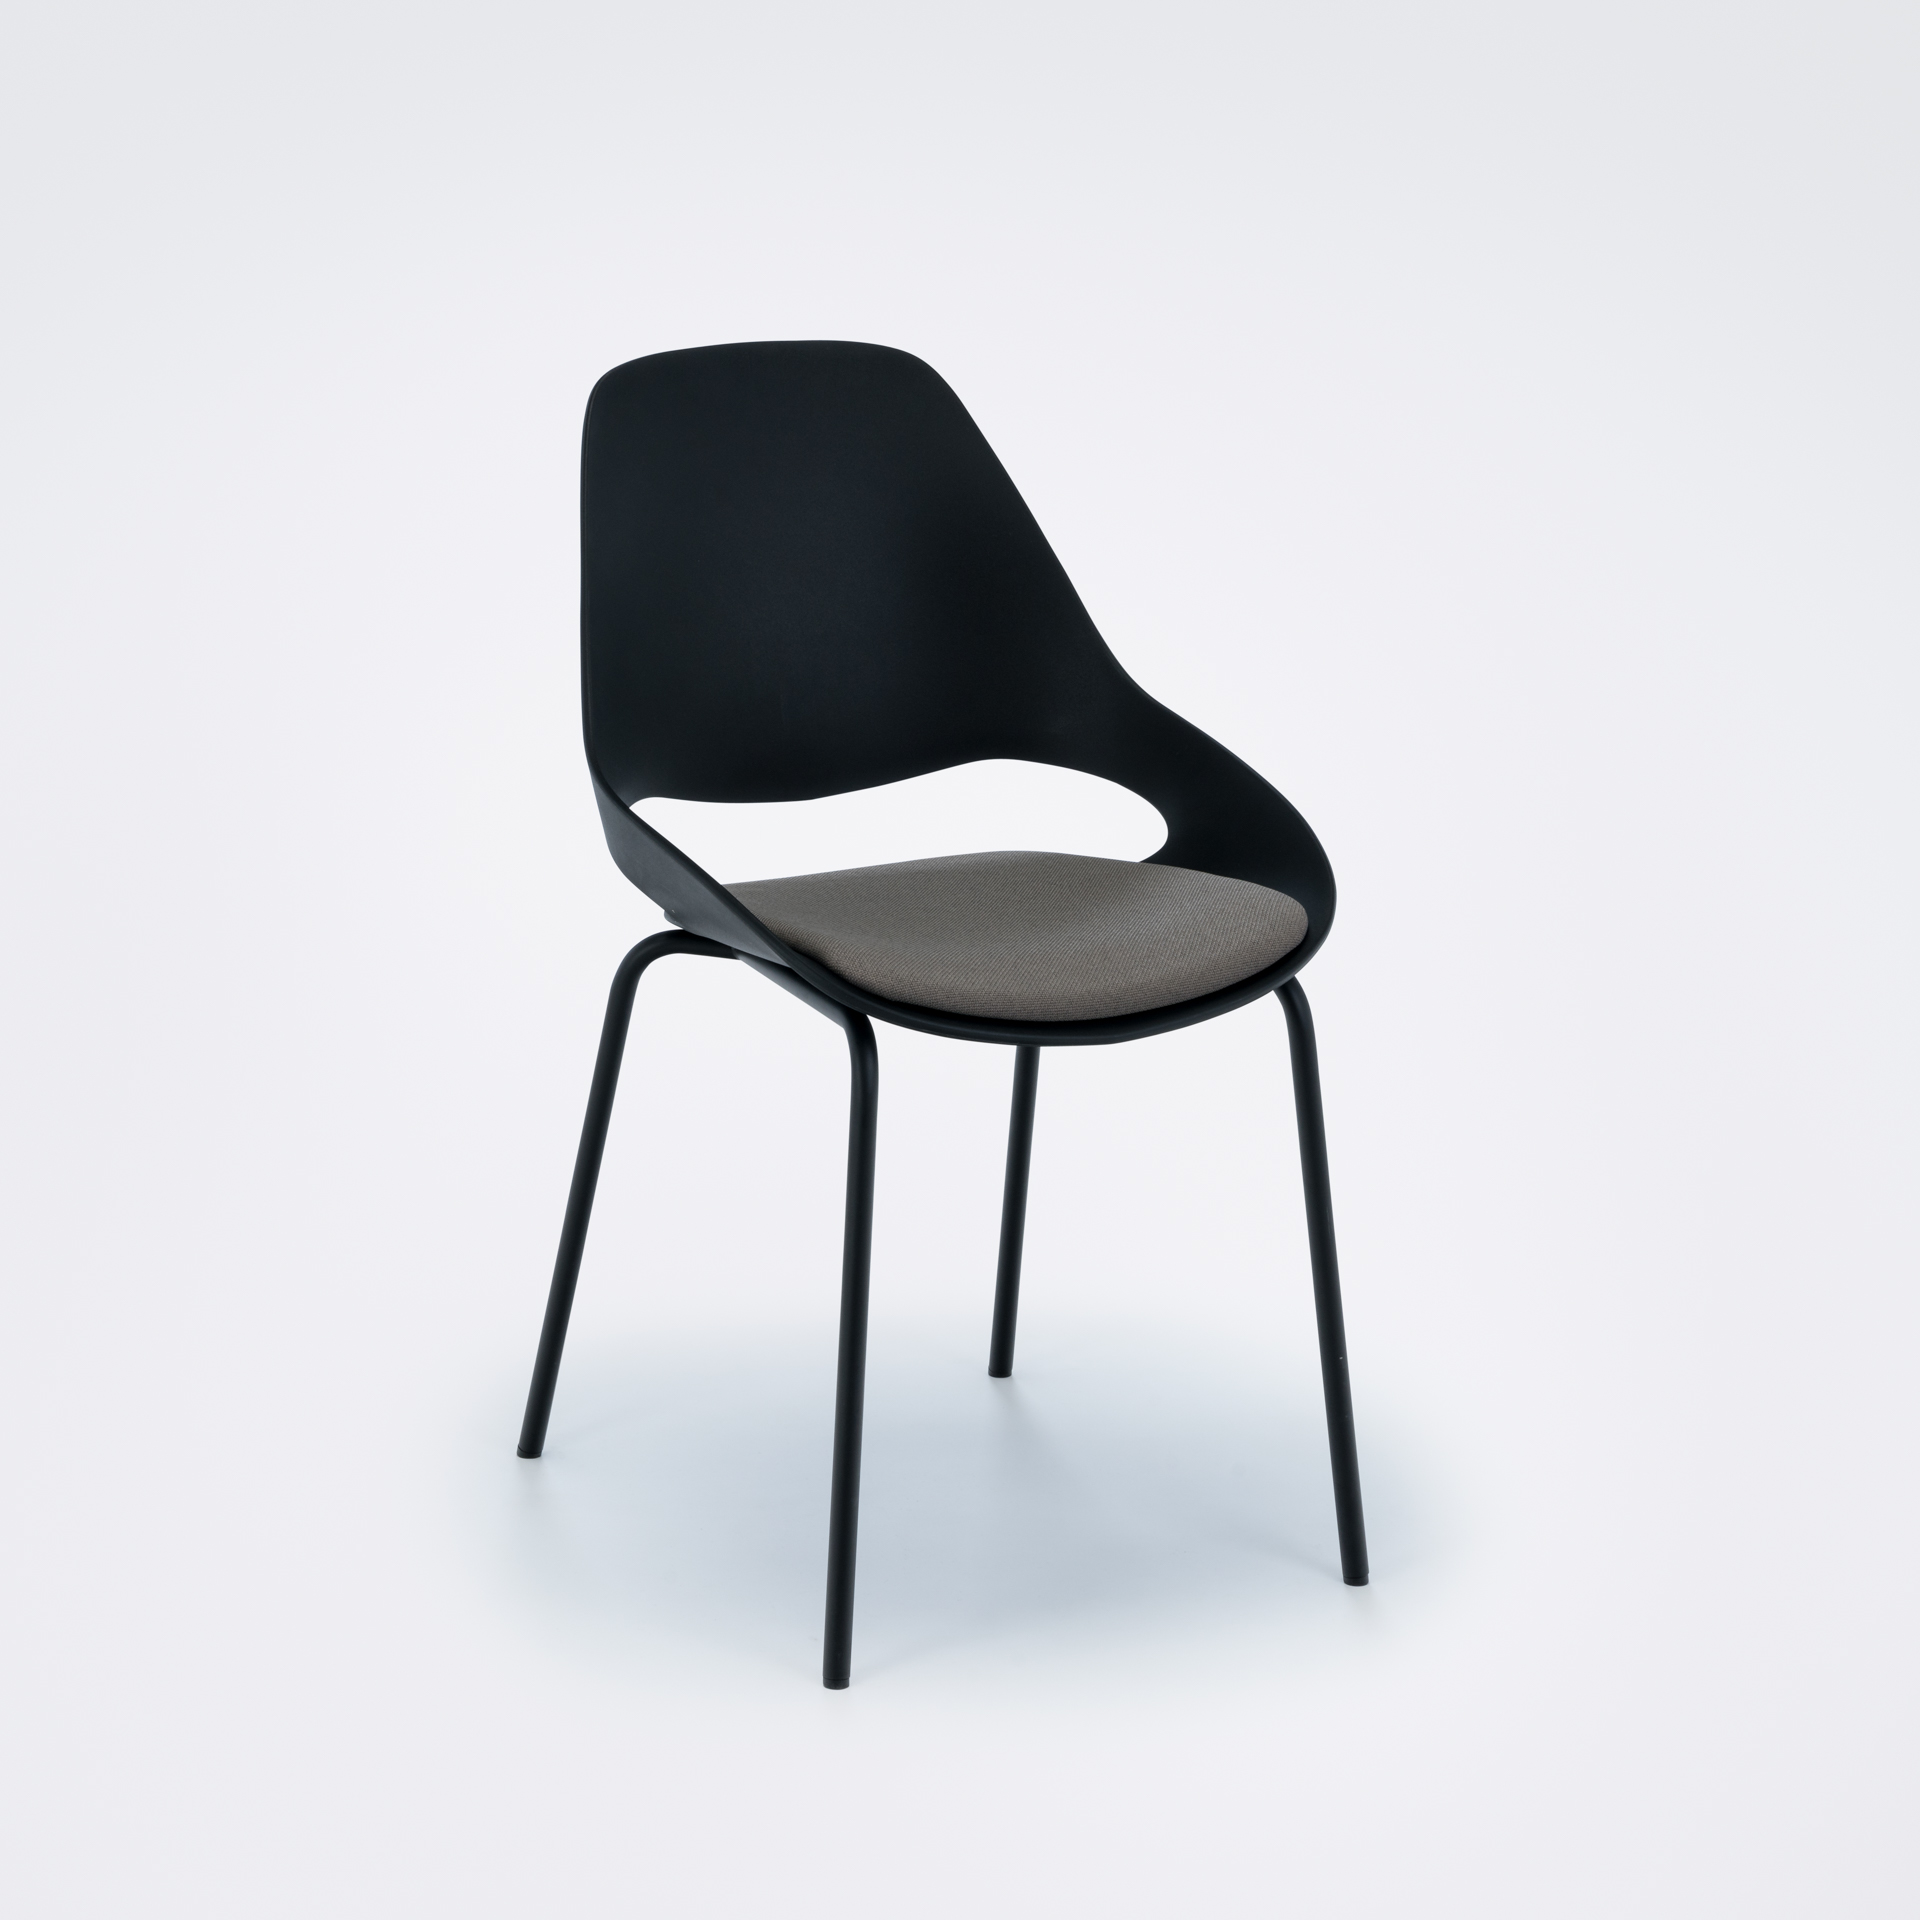 DINING CHAIR WITH PADDED SEAT // Black/ clay // Black metal legs